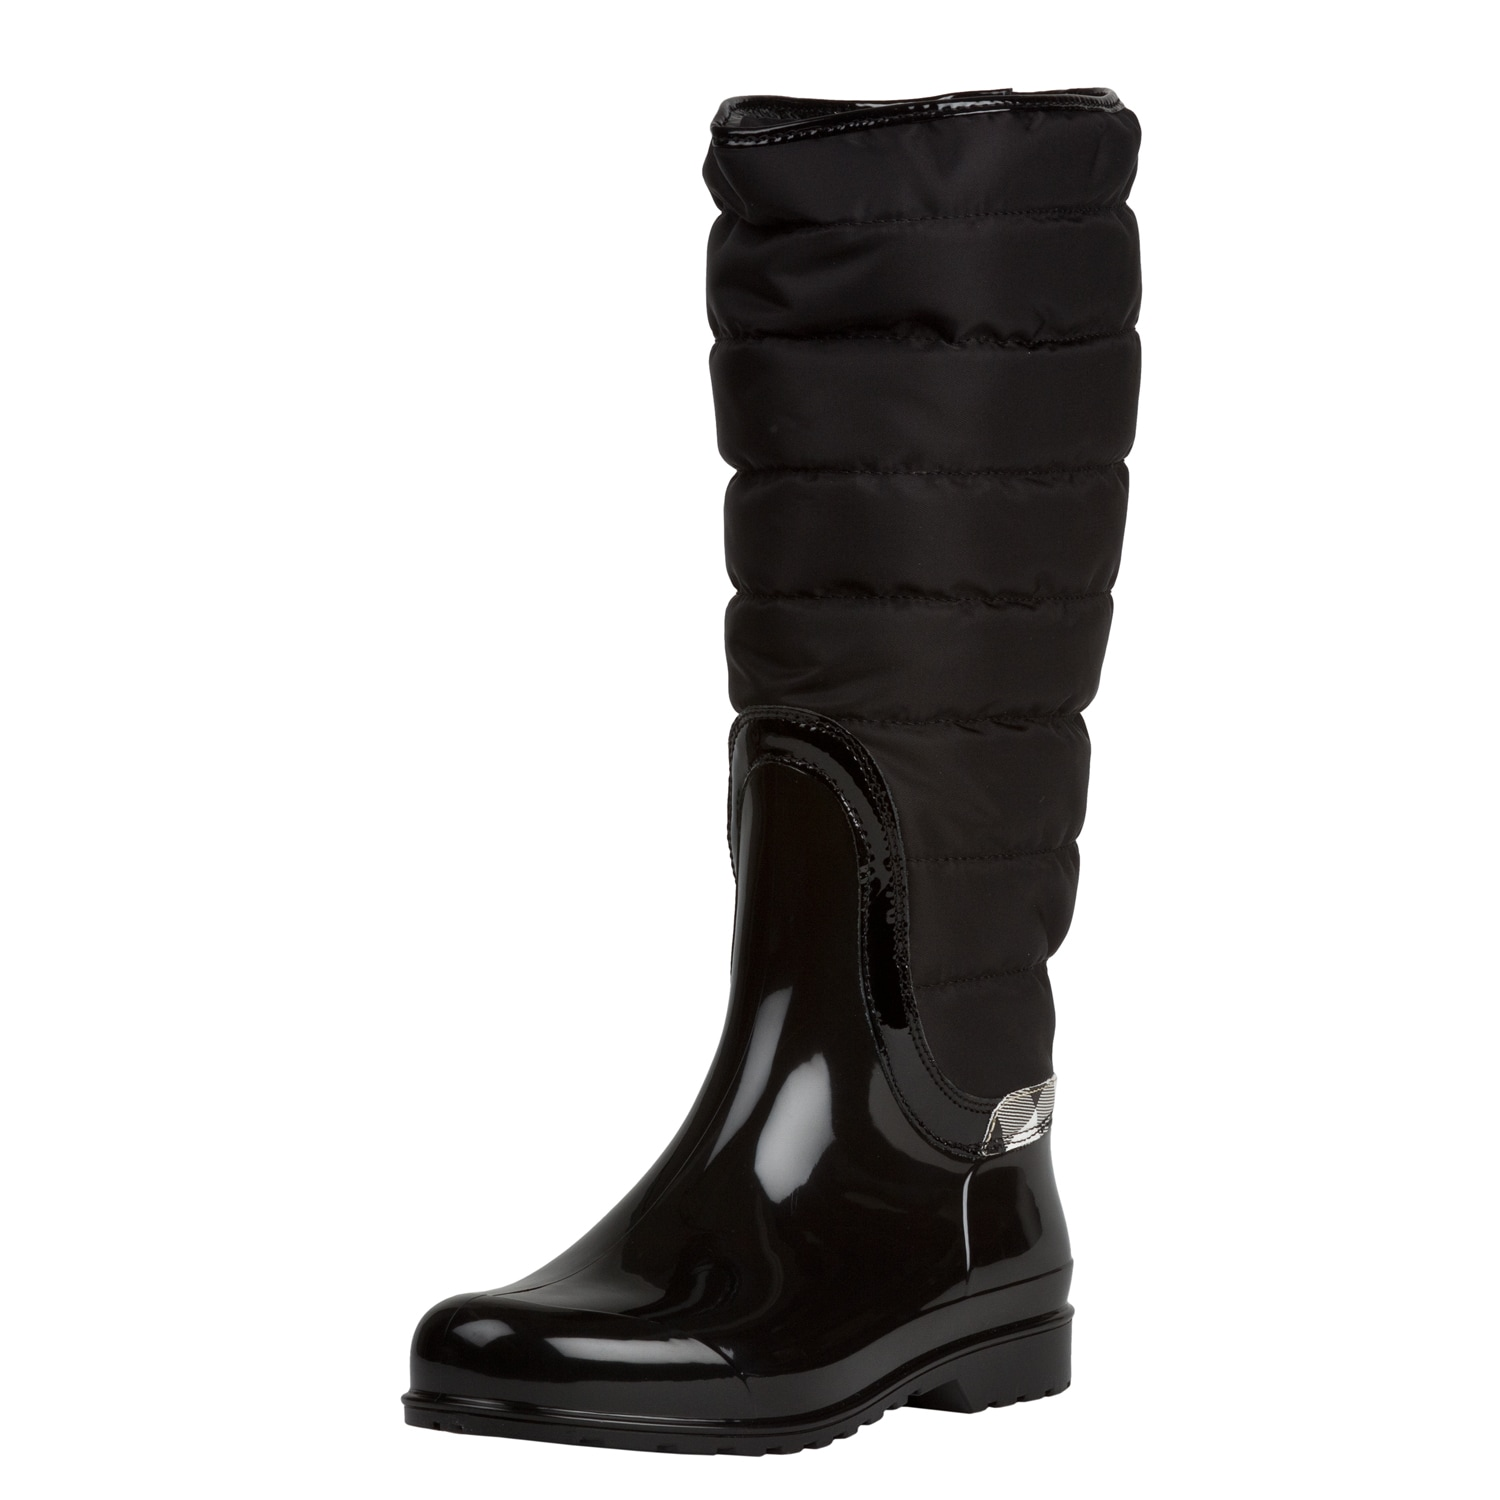 Burberry Women's Black Quilted Insulated Rain Boots